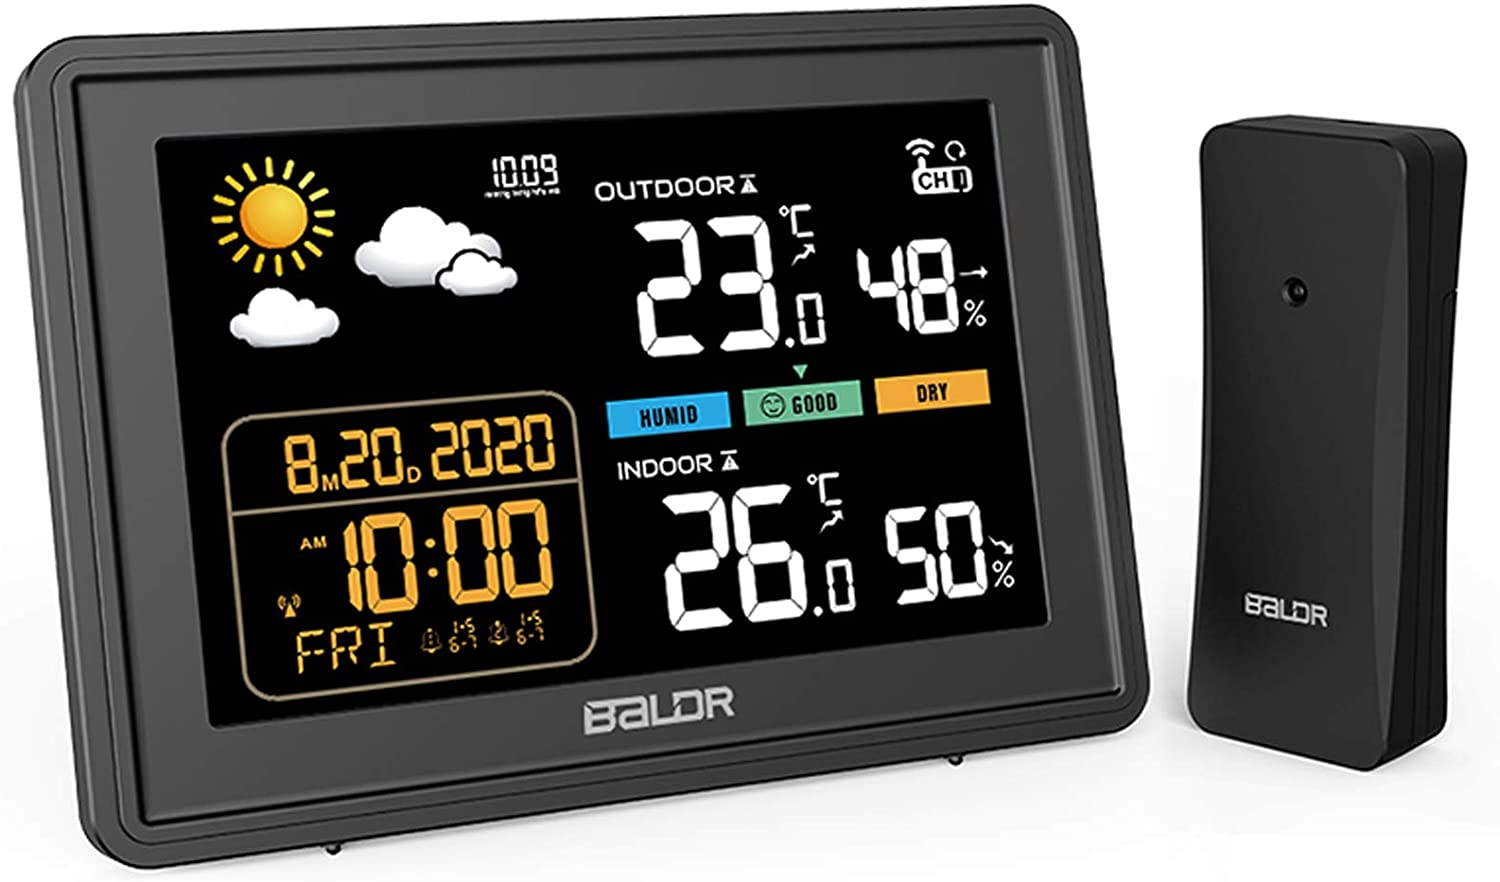 BALDR Weather Station, Wireless Indoor Outdoor Colorful Display Home Thermometer Hygrometer with Sensors and 5 Level Adjustable Backlight Humidity Monitor Weather Forecast Alarm Clock